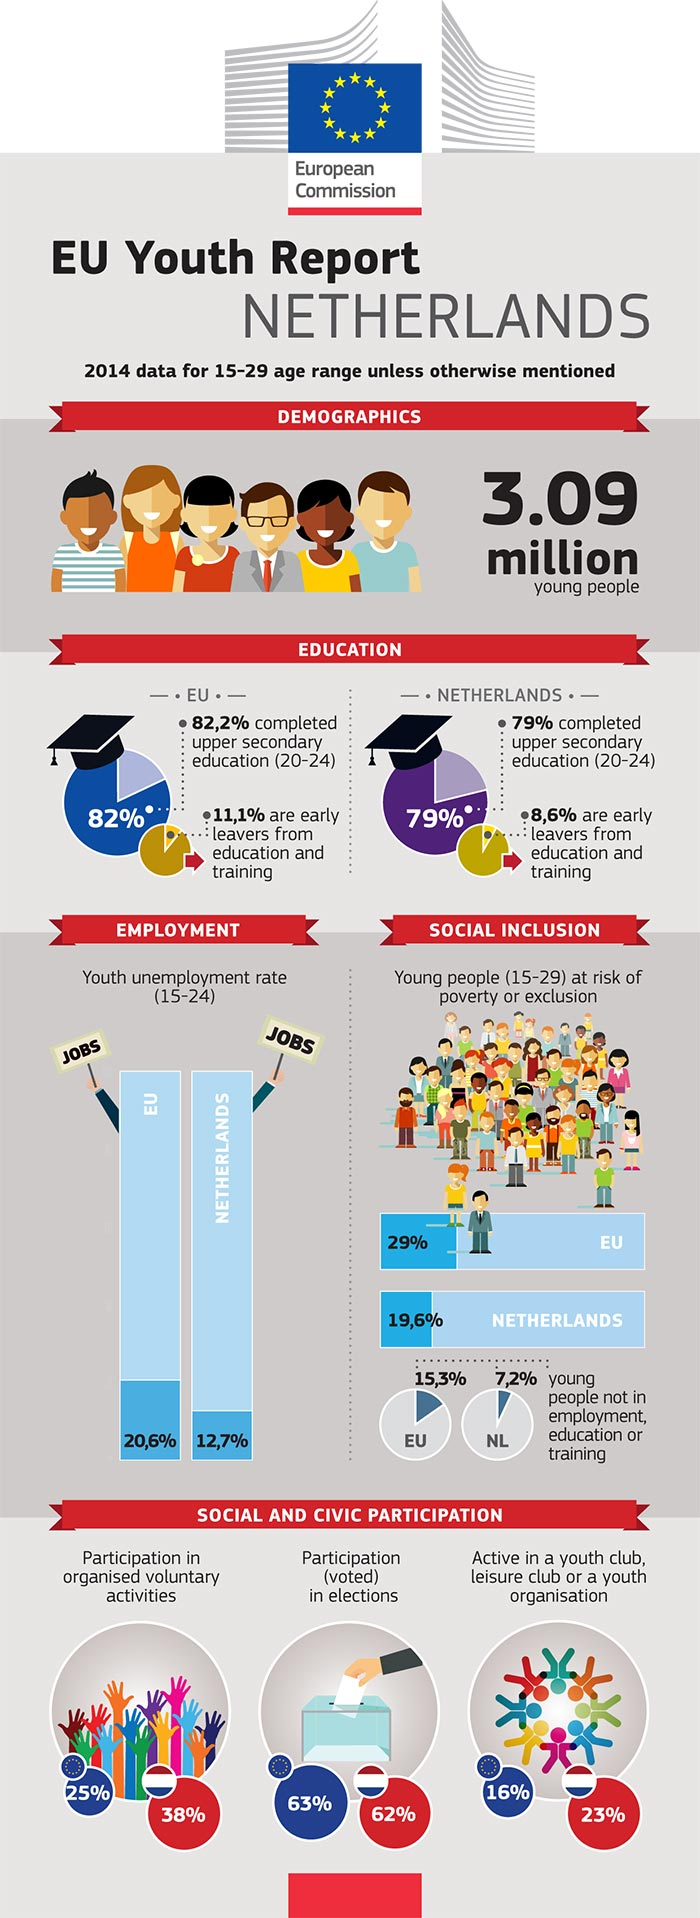 EU Youth Report infographic: Netherlands